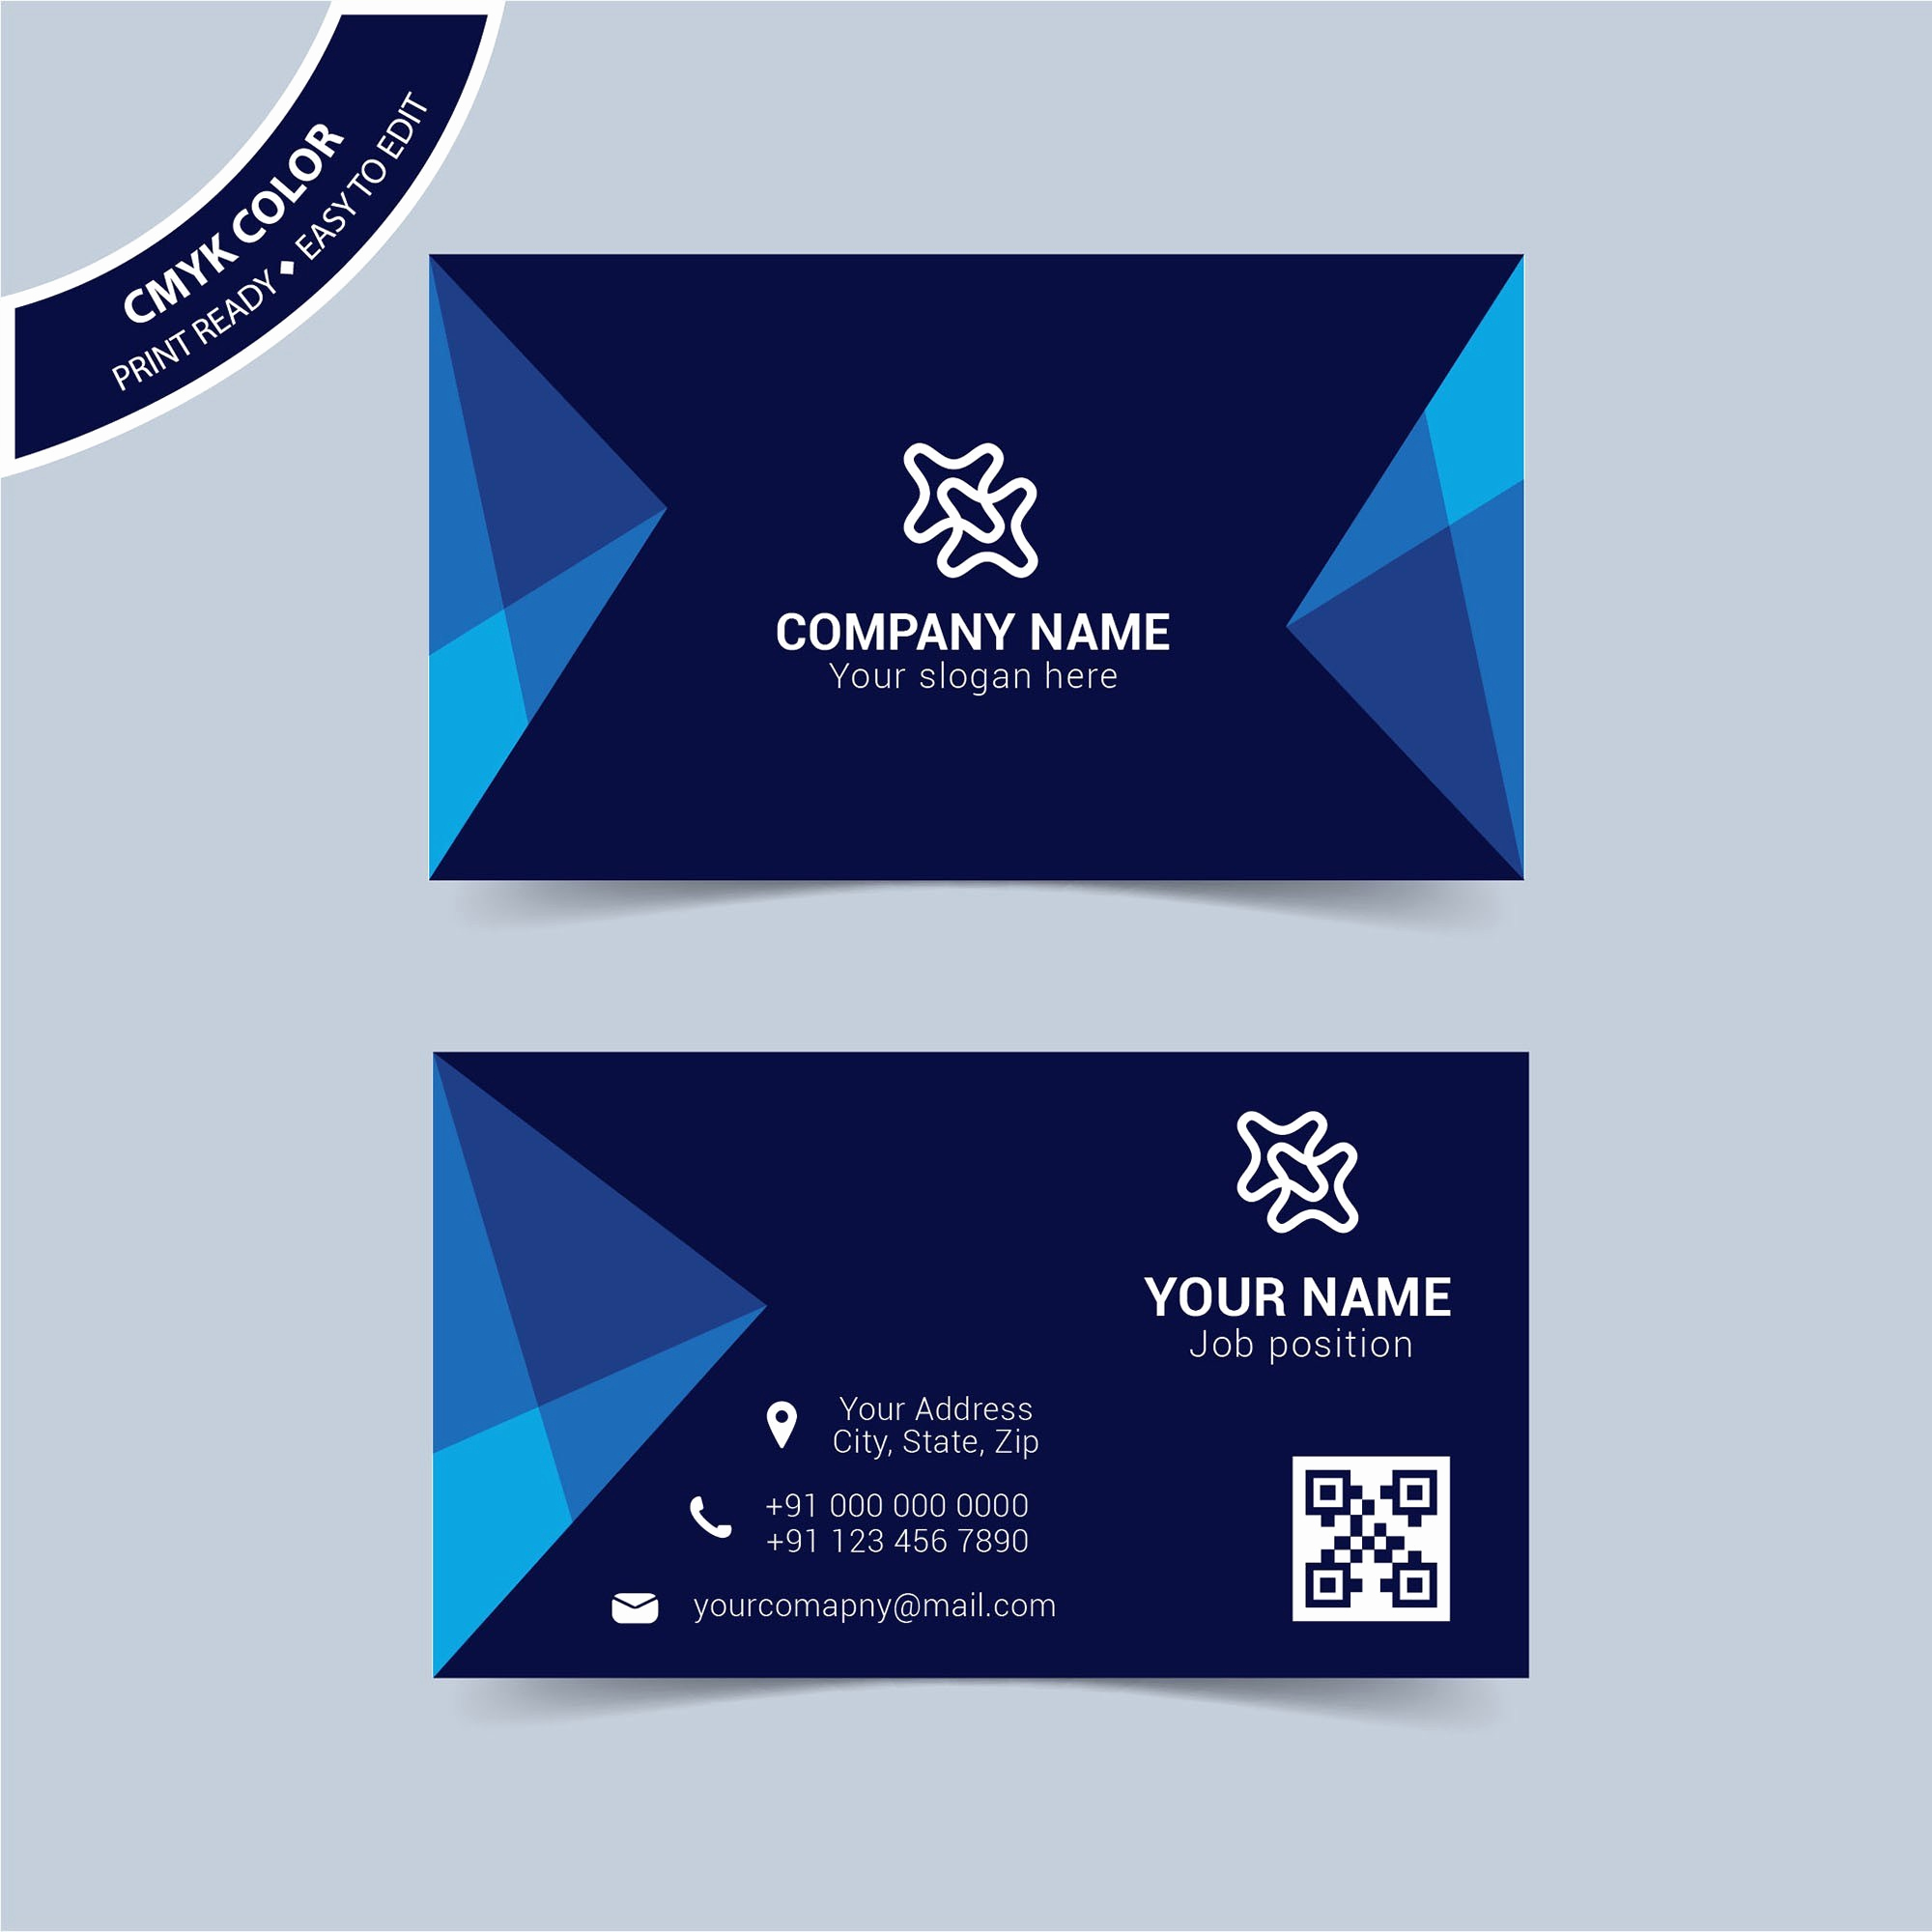 Business Card Template Illustrator Free Lovely Business Card Template Illustrator Free Download – Modern